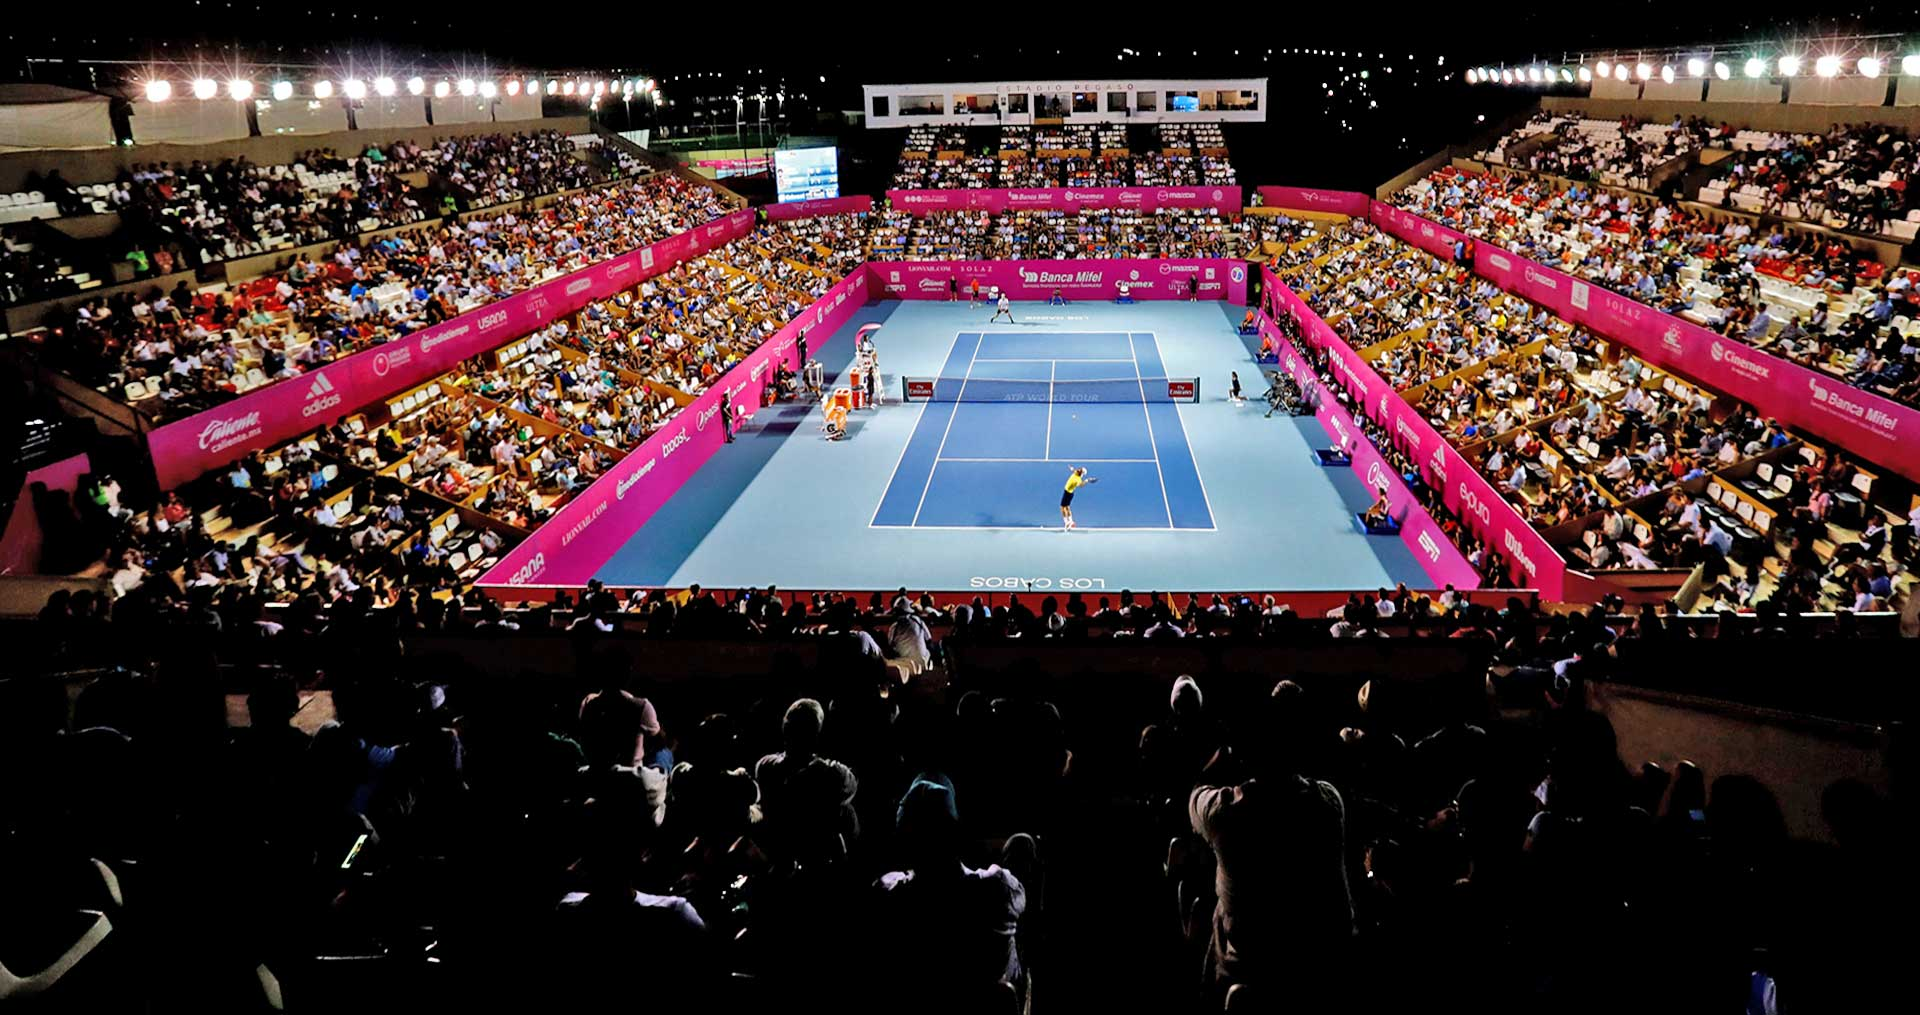 Photo by ATP World Tour